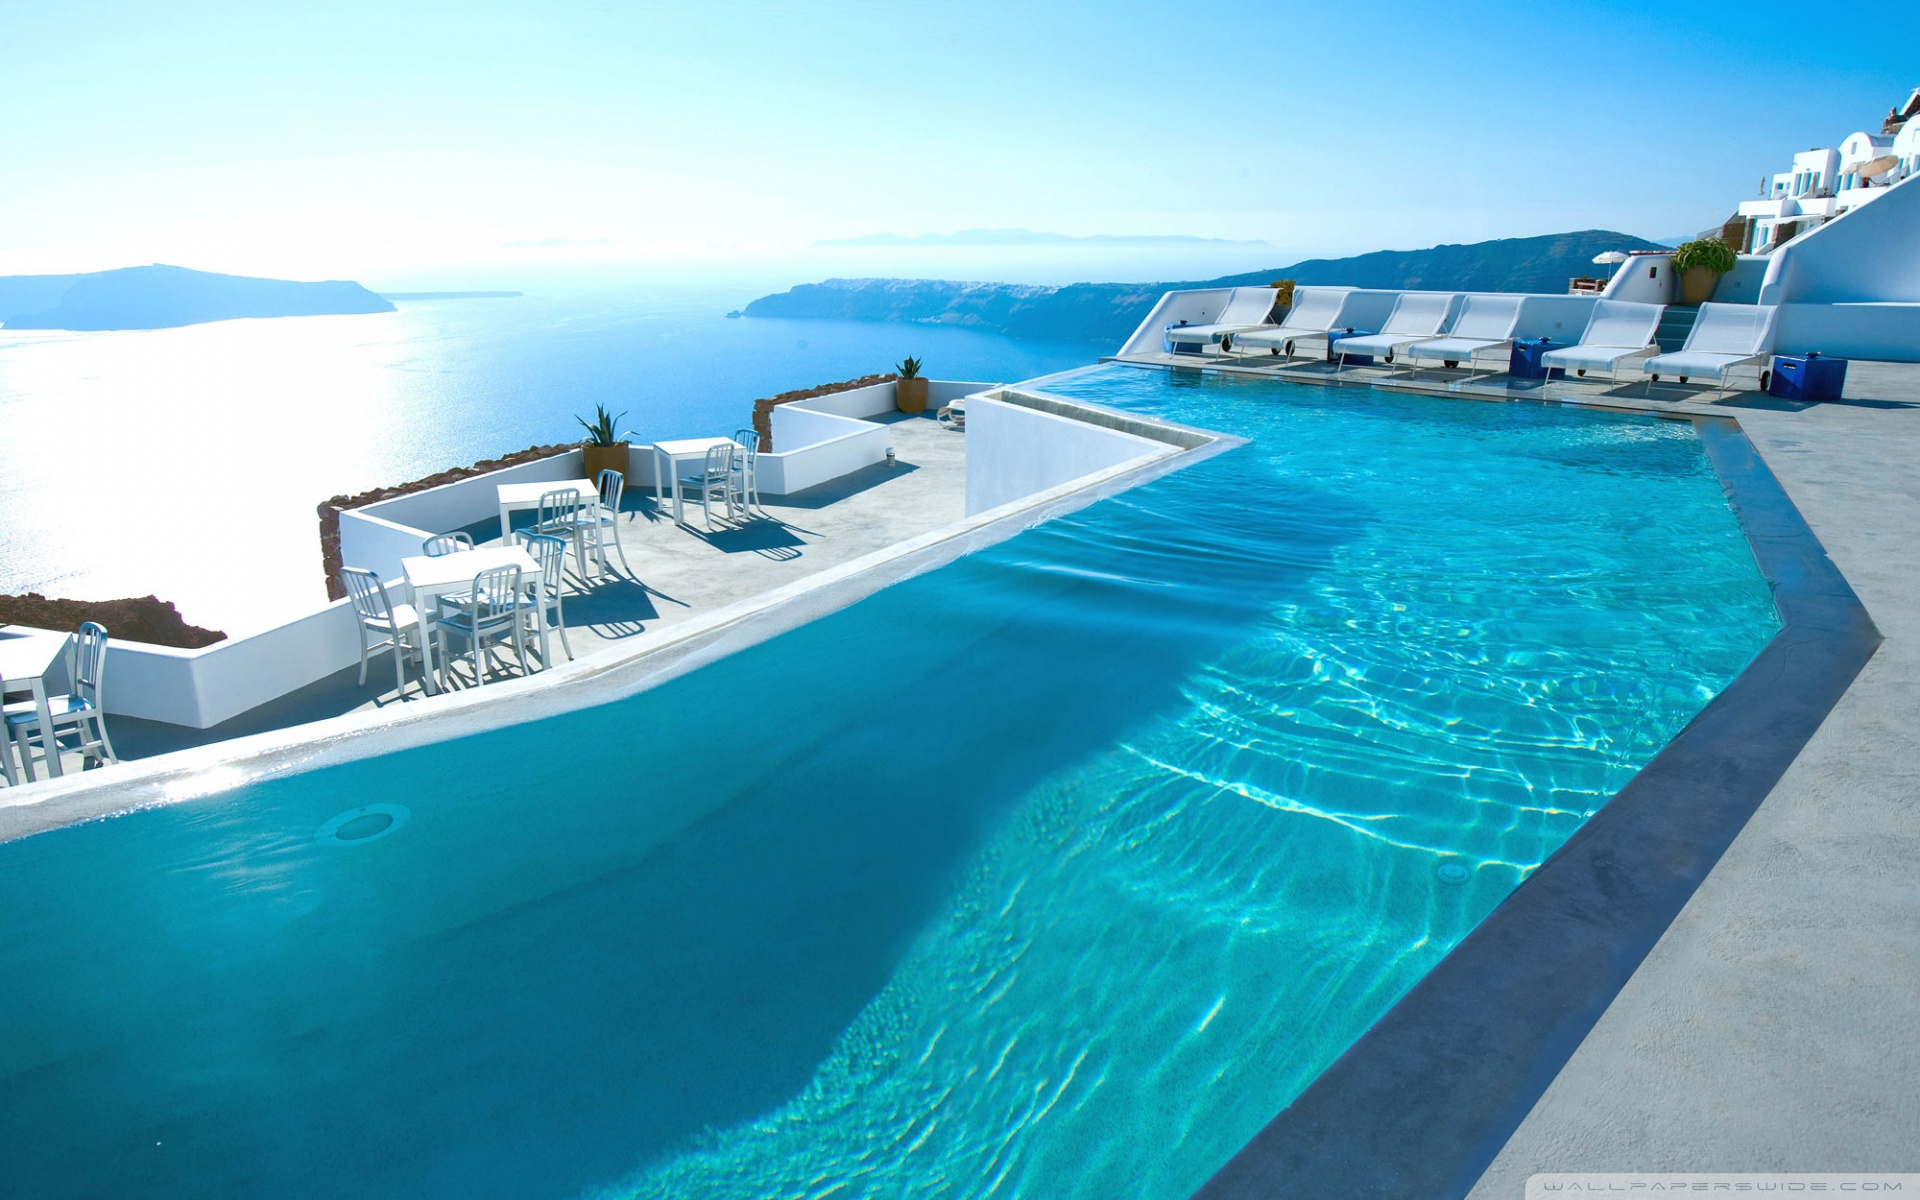 Santorini Hotel 4K HD Desktop Wallpaper for 4K Ultra HD TV 1920x1200